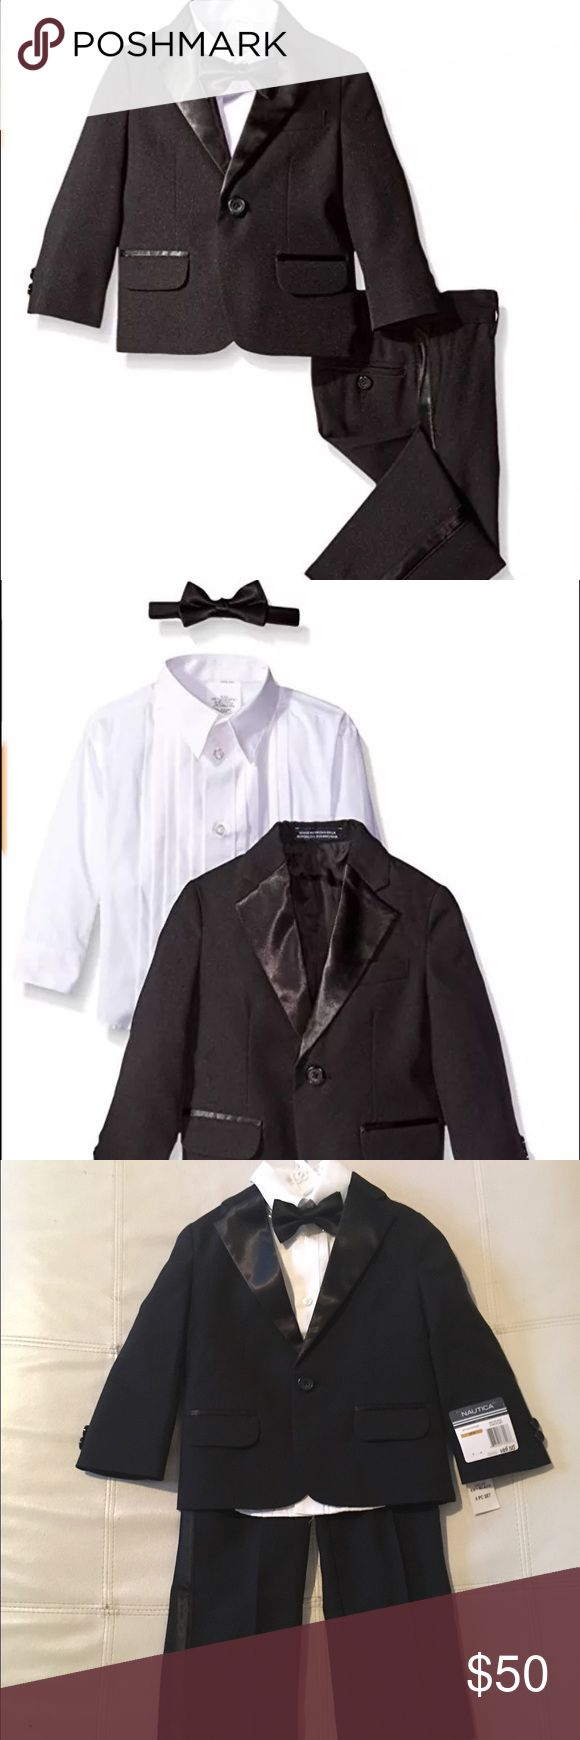 Nautica Little Boys' Tuxedo Suit Set with Bow Tie Color: Black 100% Polyester Imported Dry Clean Only Three piece suit set: jacket, shirt, pant Tuxedo style set Bow tie included Satin lapels on jacket and side insert on pant Nautica Matching Sets